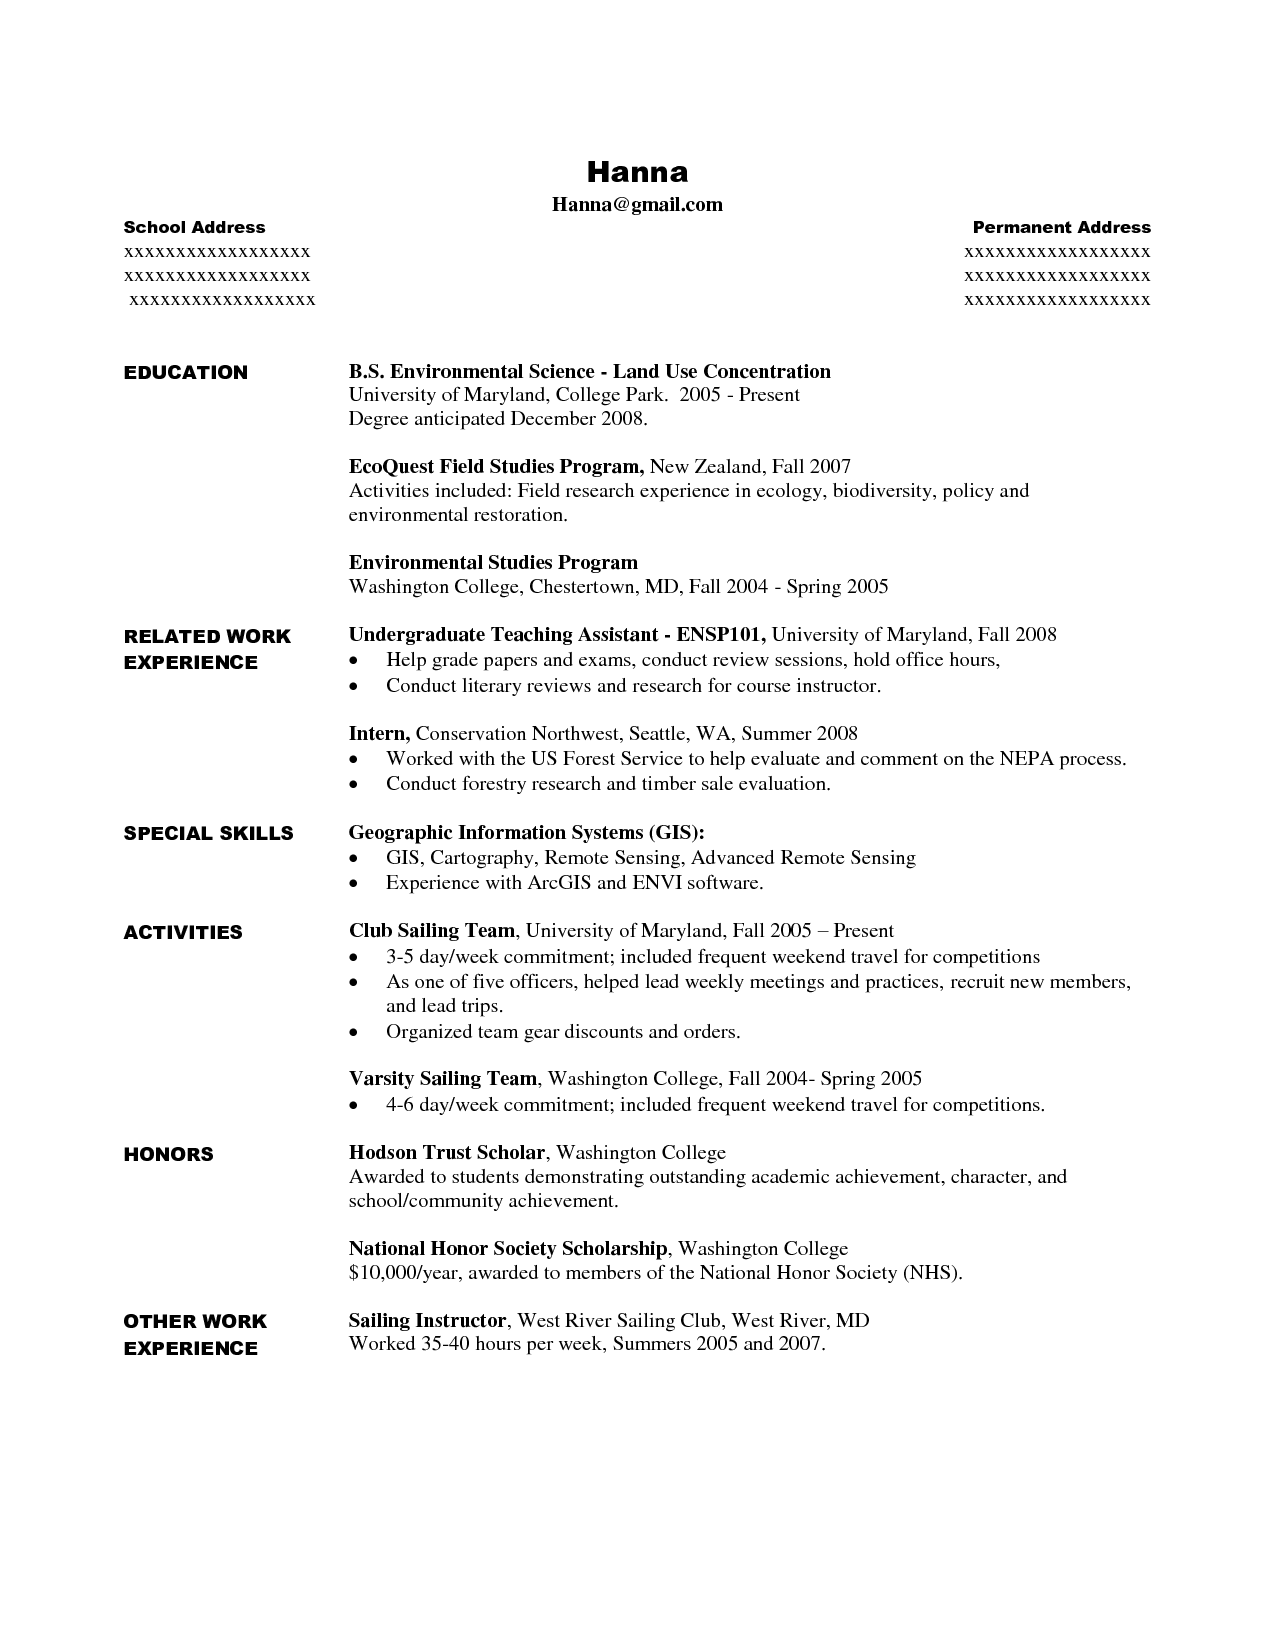 Student Activity Resume Template | Resume | Pinterest | Sample